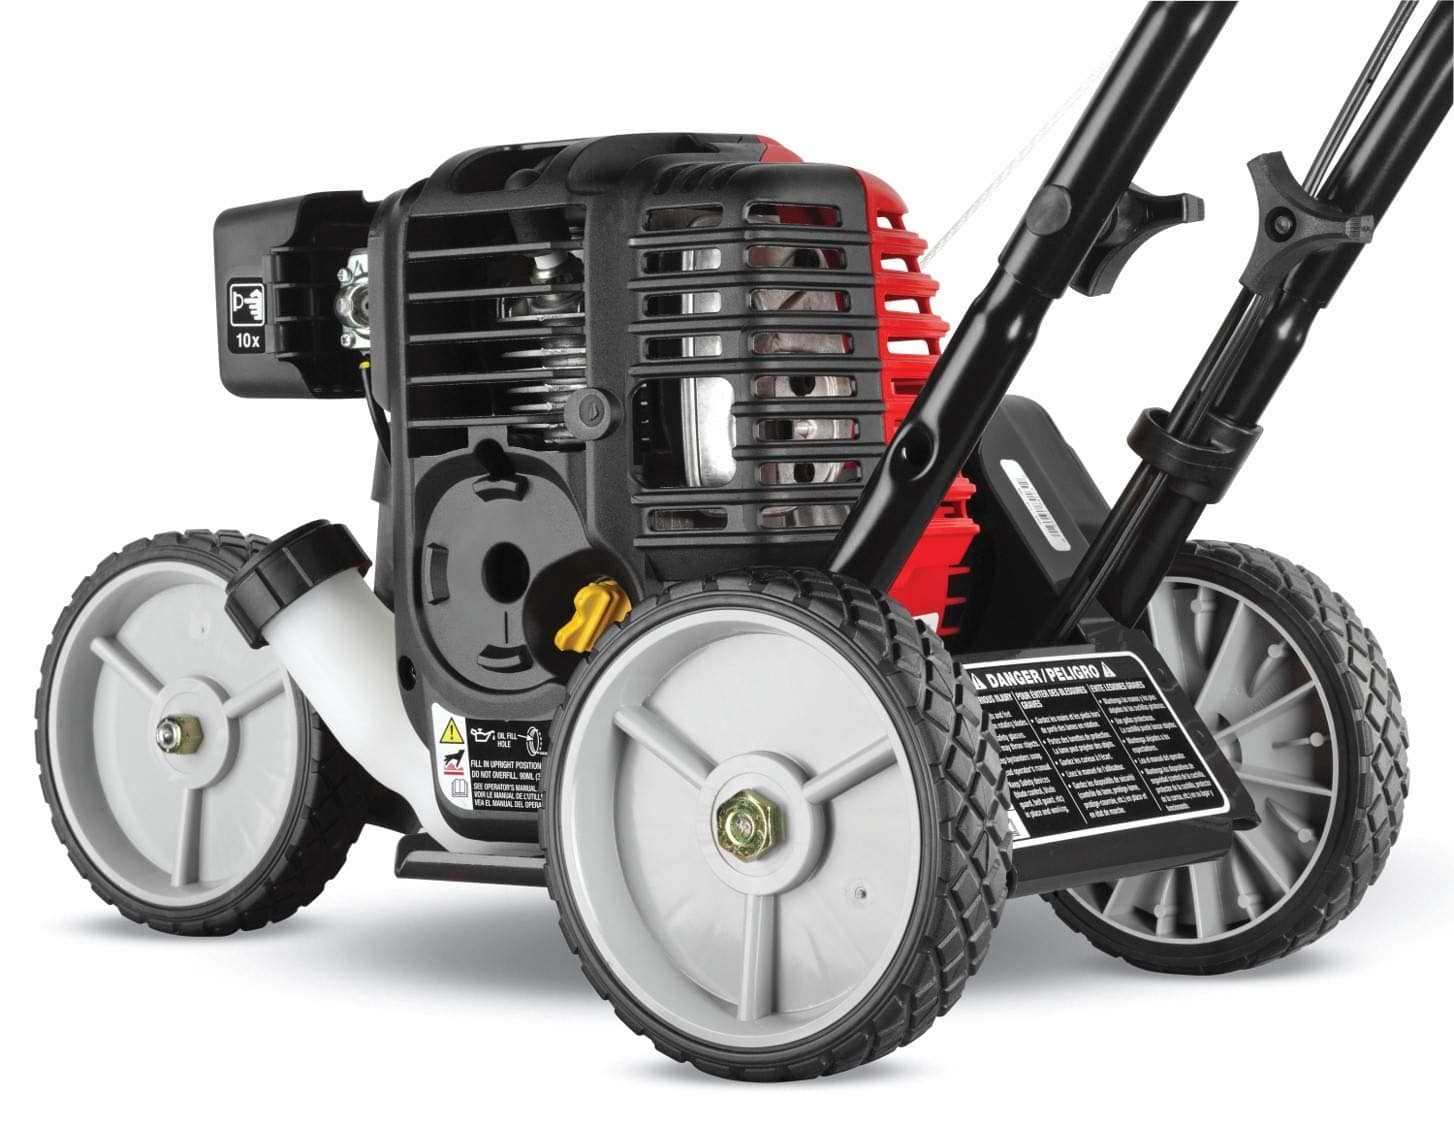 CRAFTSMAN E405 29cc 4-Cycle Gas Powered Grass Lawn Edger -  $115.87